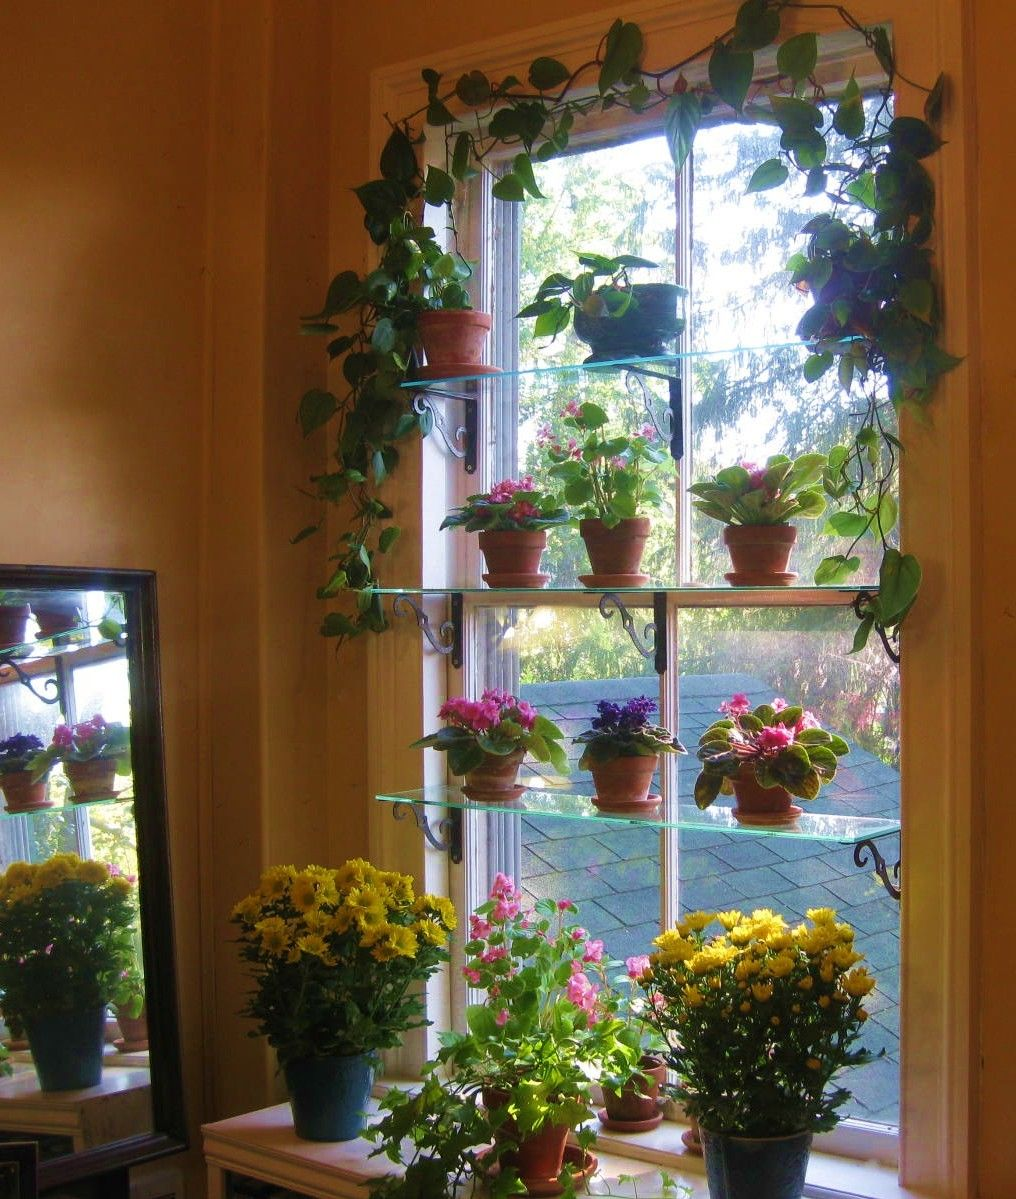 Kitchen Window Plant Shelf: Create A Window Garden!